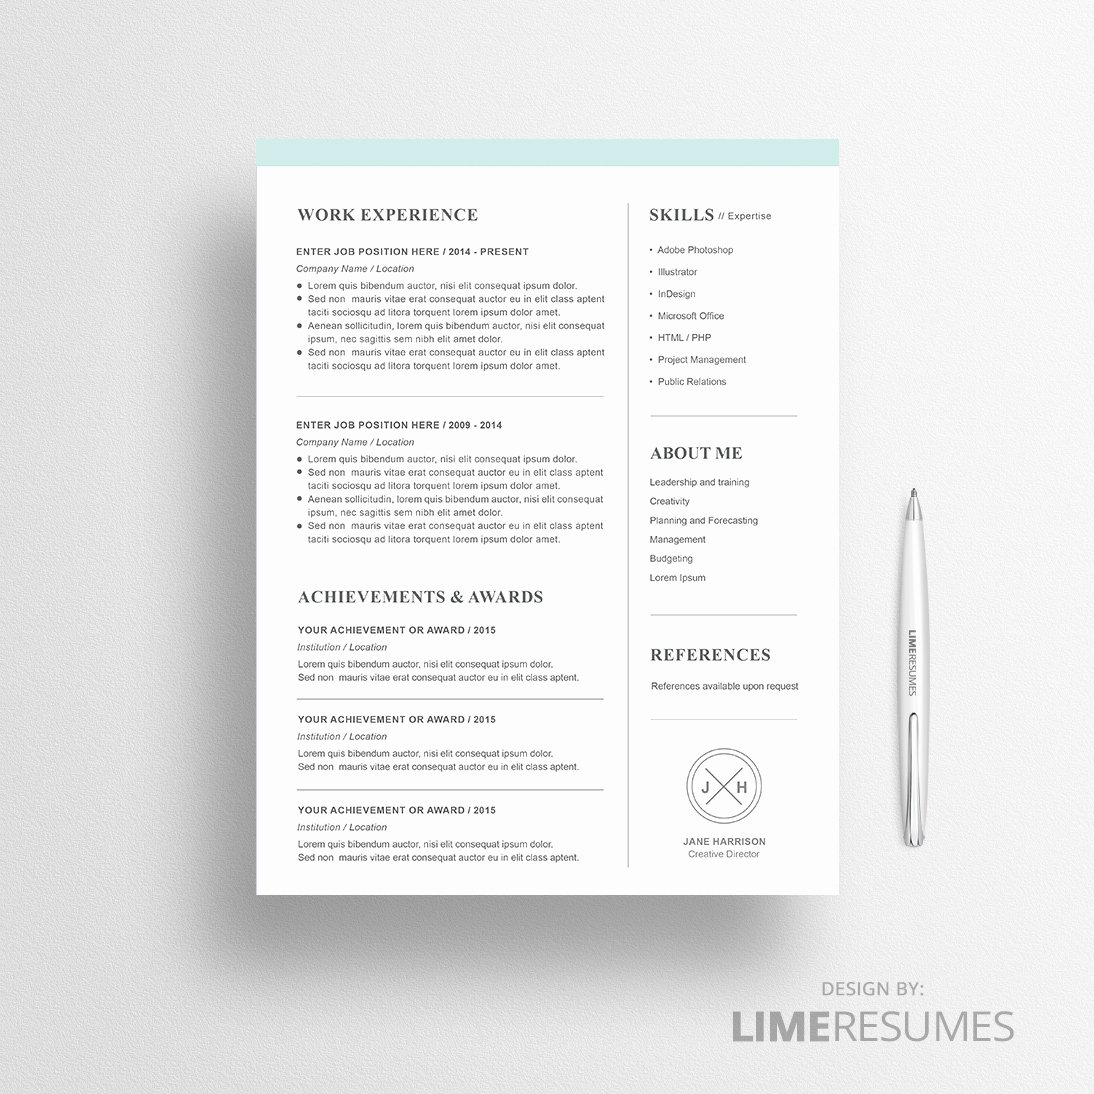 Matching Test Template Microsoft Word Lovely Modern Resume Template for Microsoft Word Limeresumes